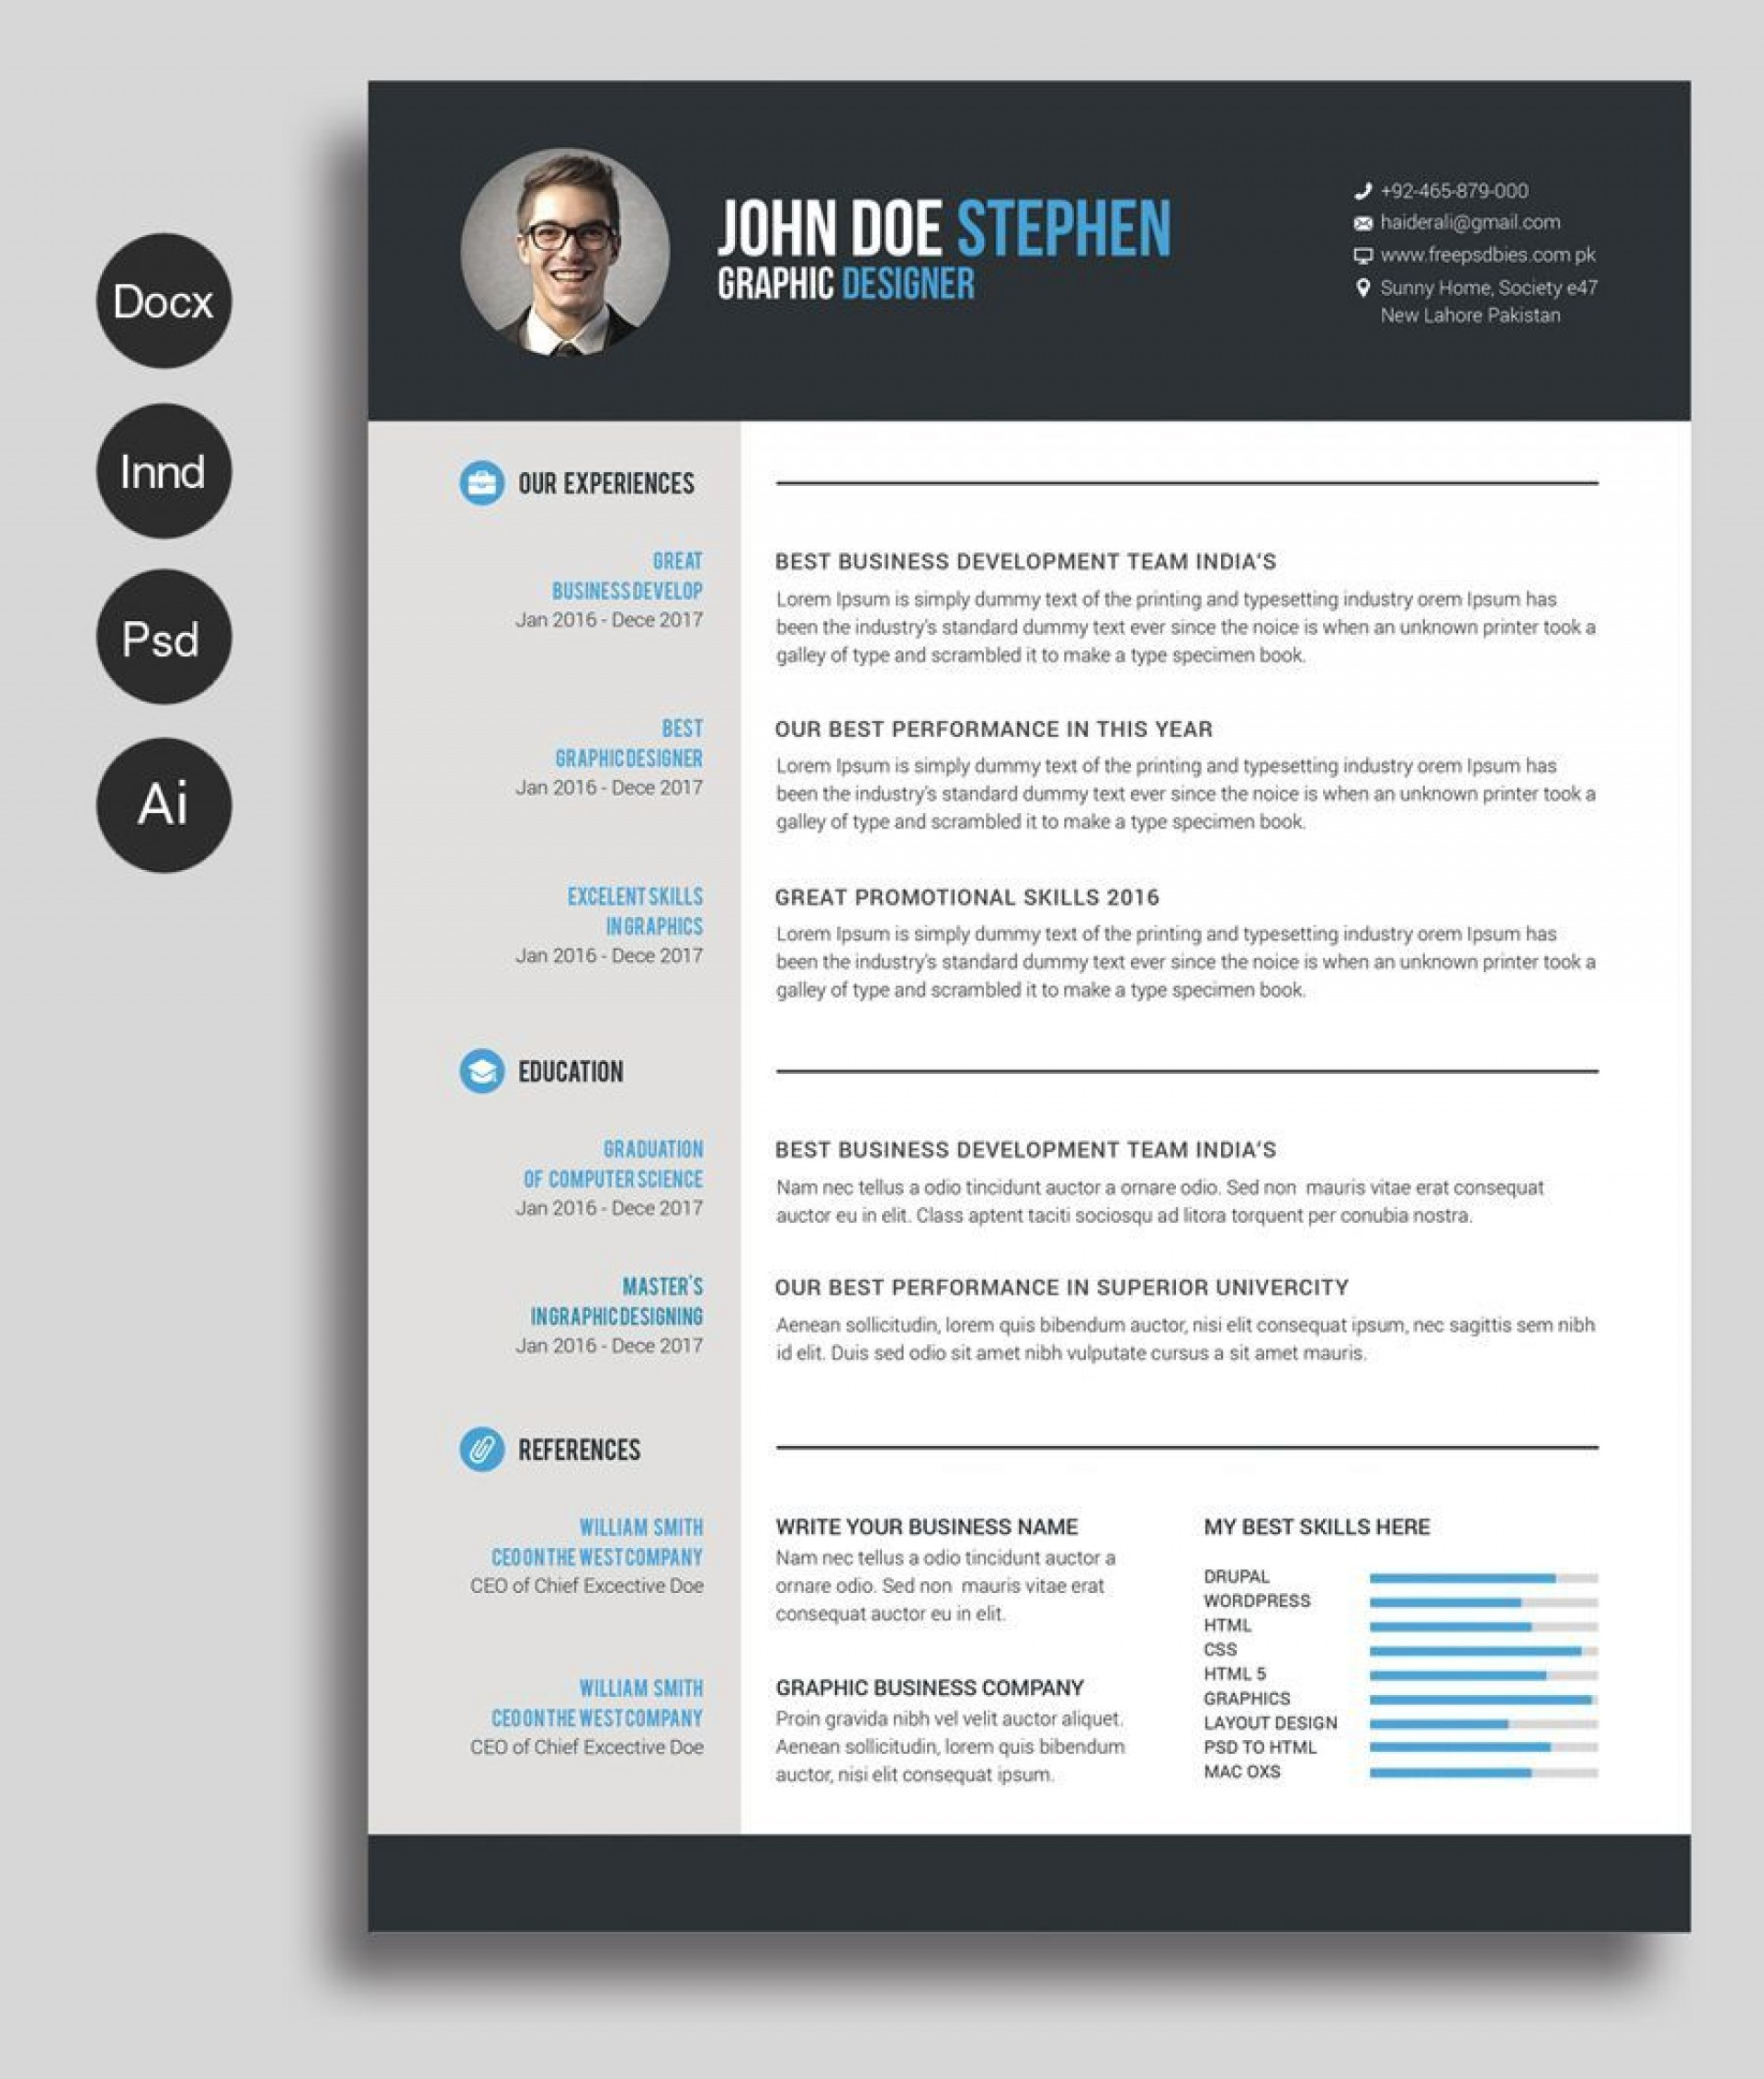 001 Awesome Resume Template Free Word Inspiration  Download Document 2020 For Fresher1920